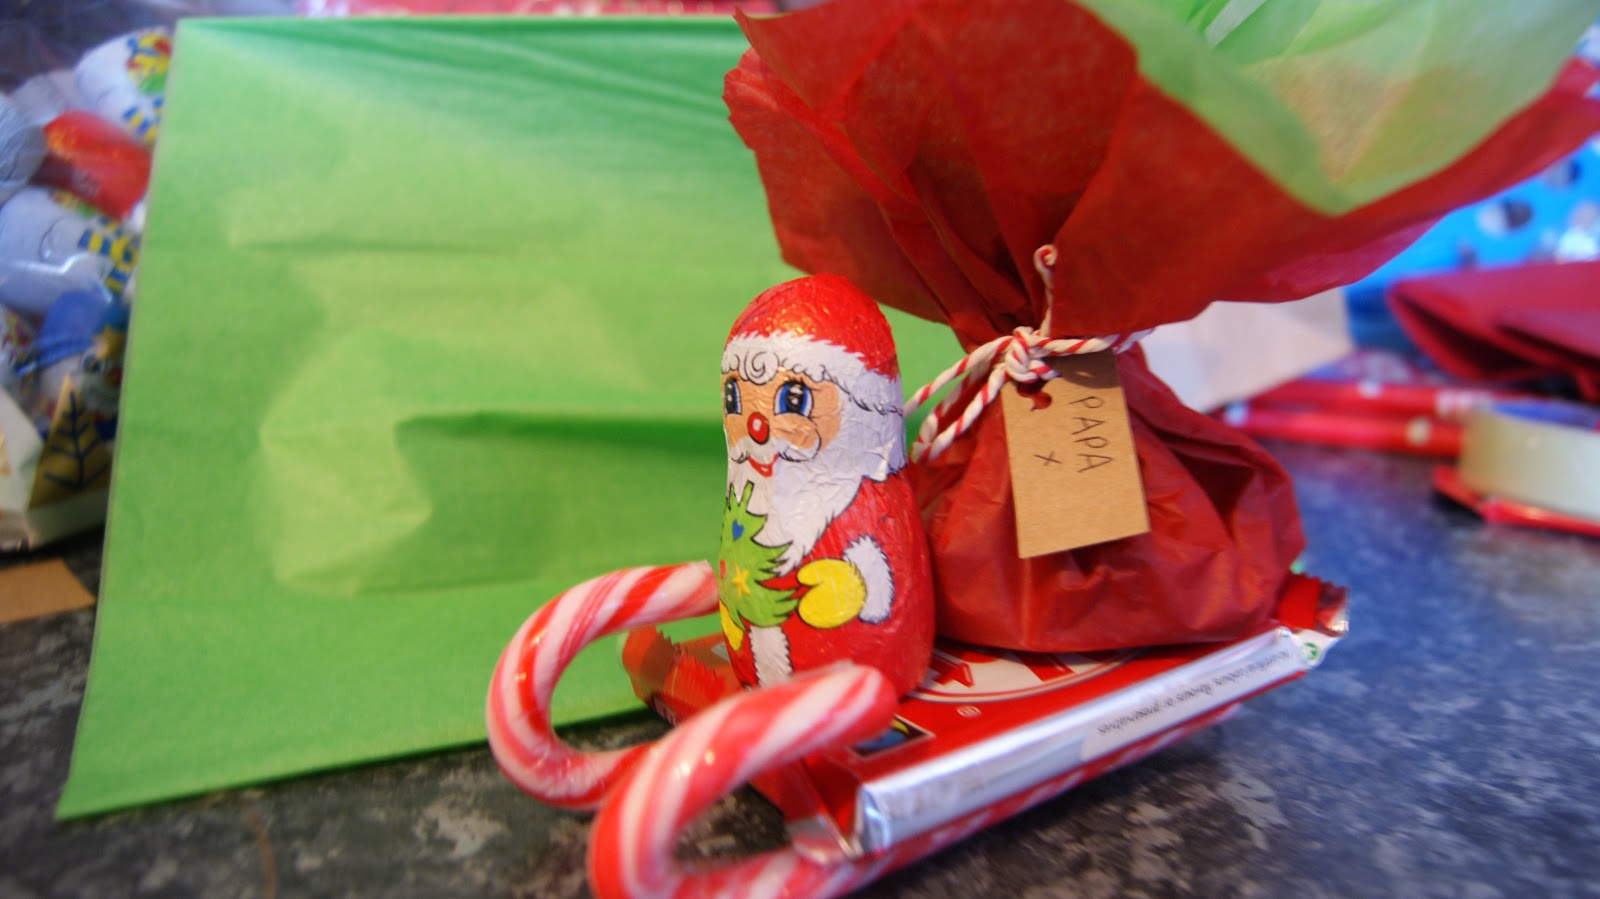 The Syders: Christmas On A Budget - Candy Cane Sleighs